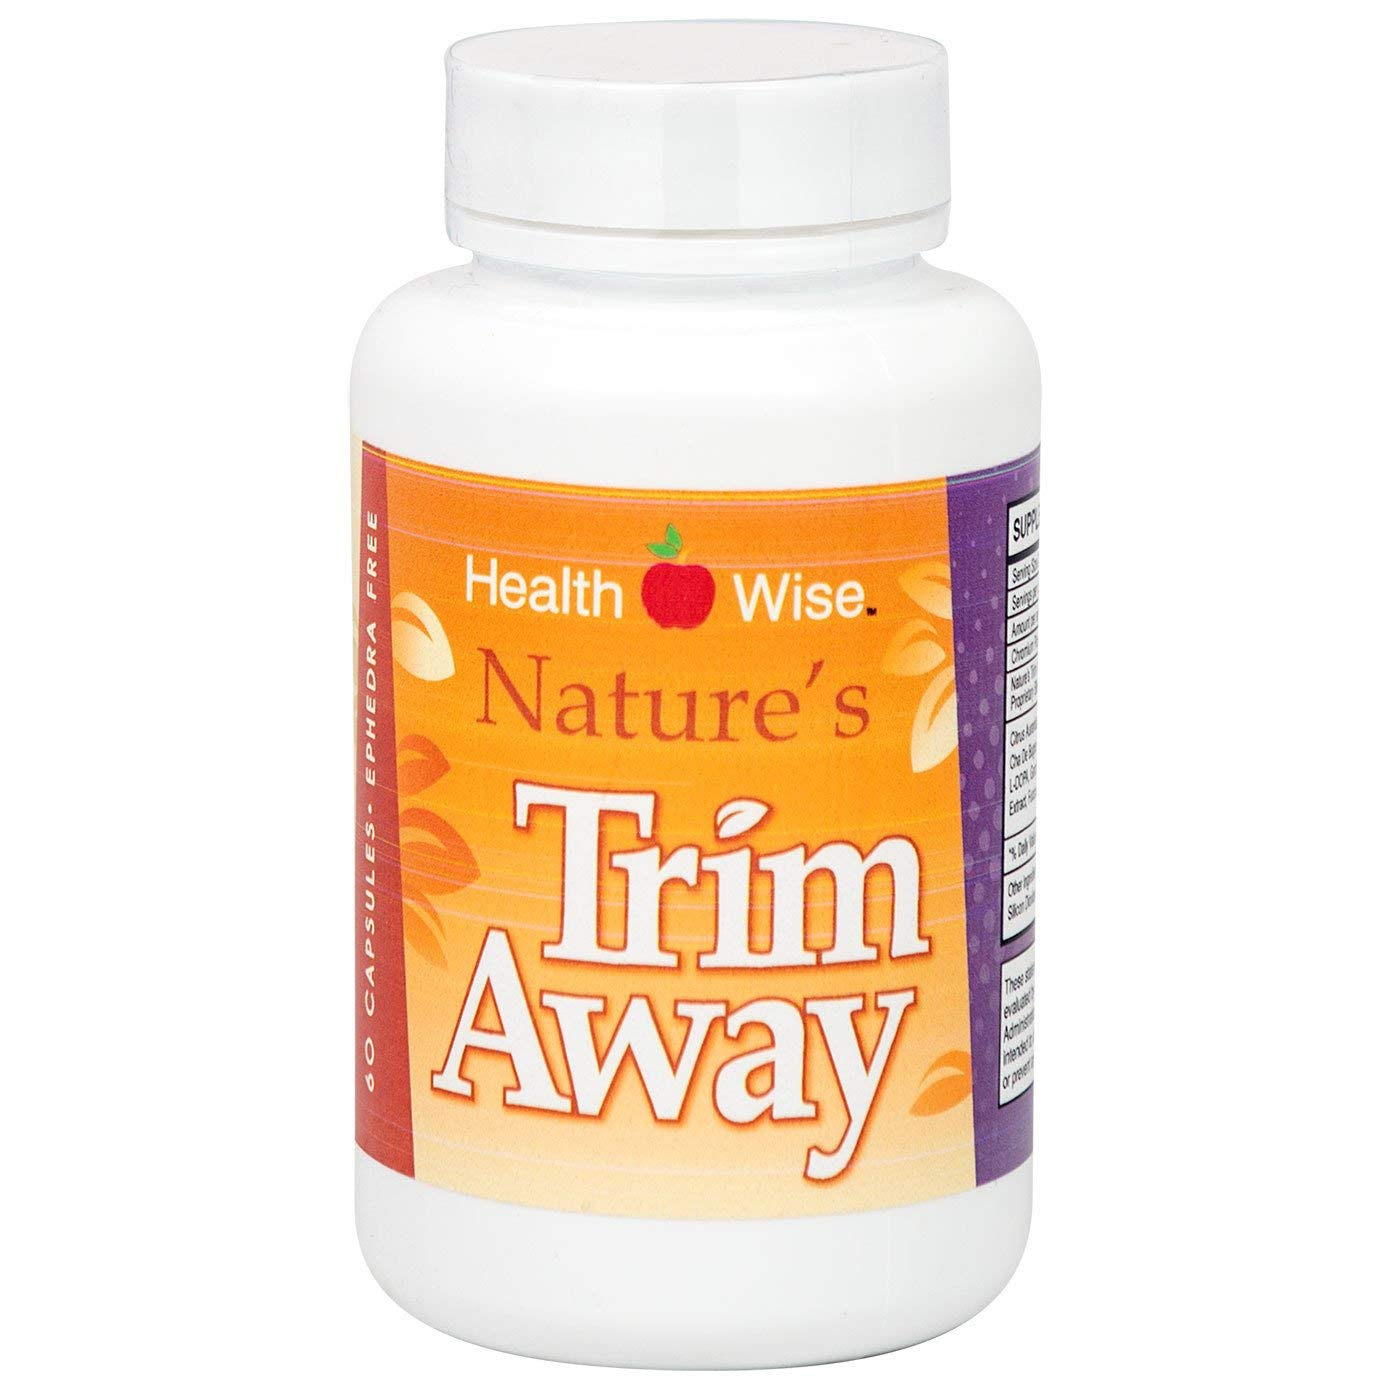 HealthSmart - Nature's Trim Away - Diet Supplement - Appetite Suppressant - Synergistic Formula - 60 Capsules by HealthSmart